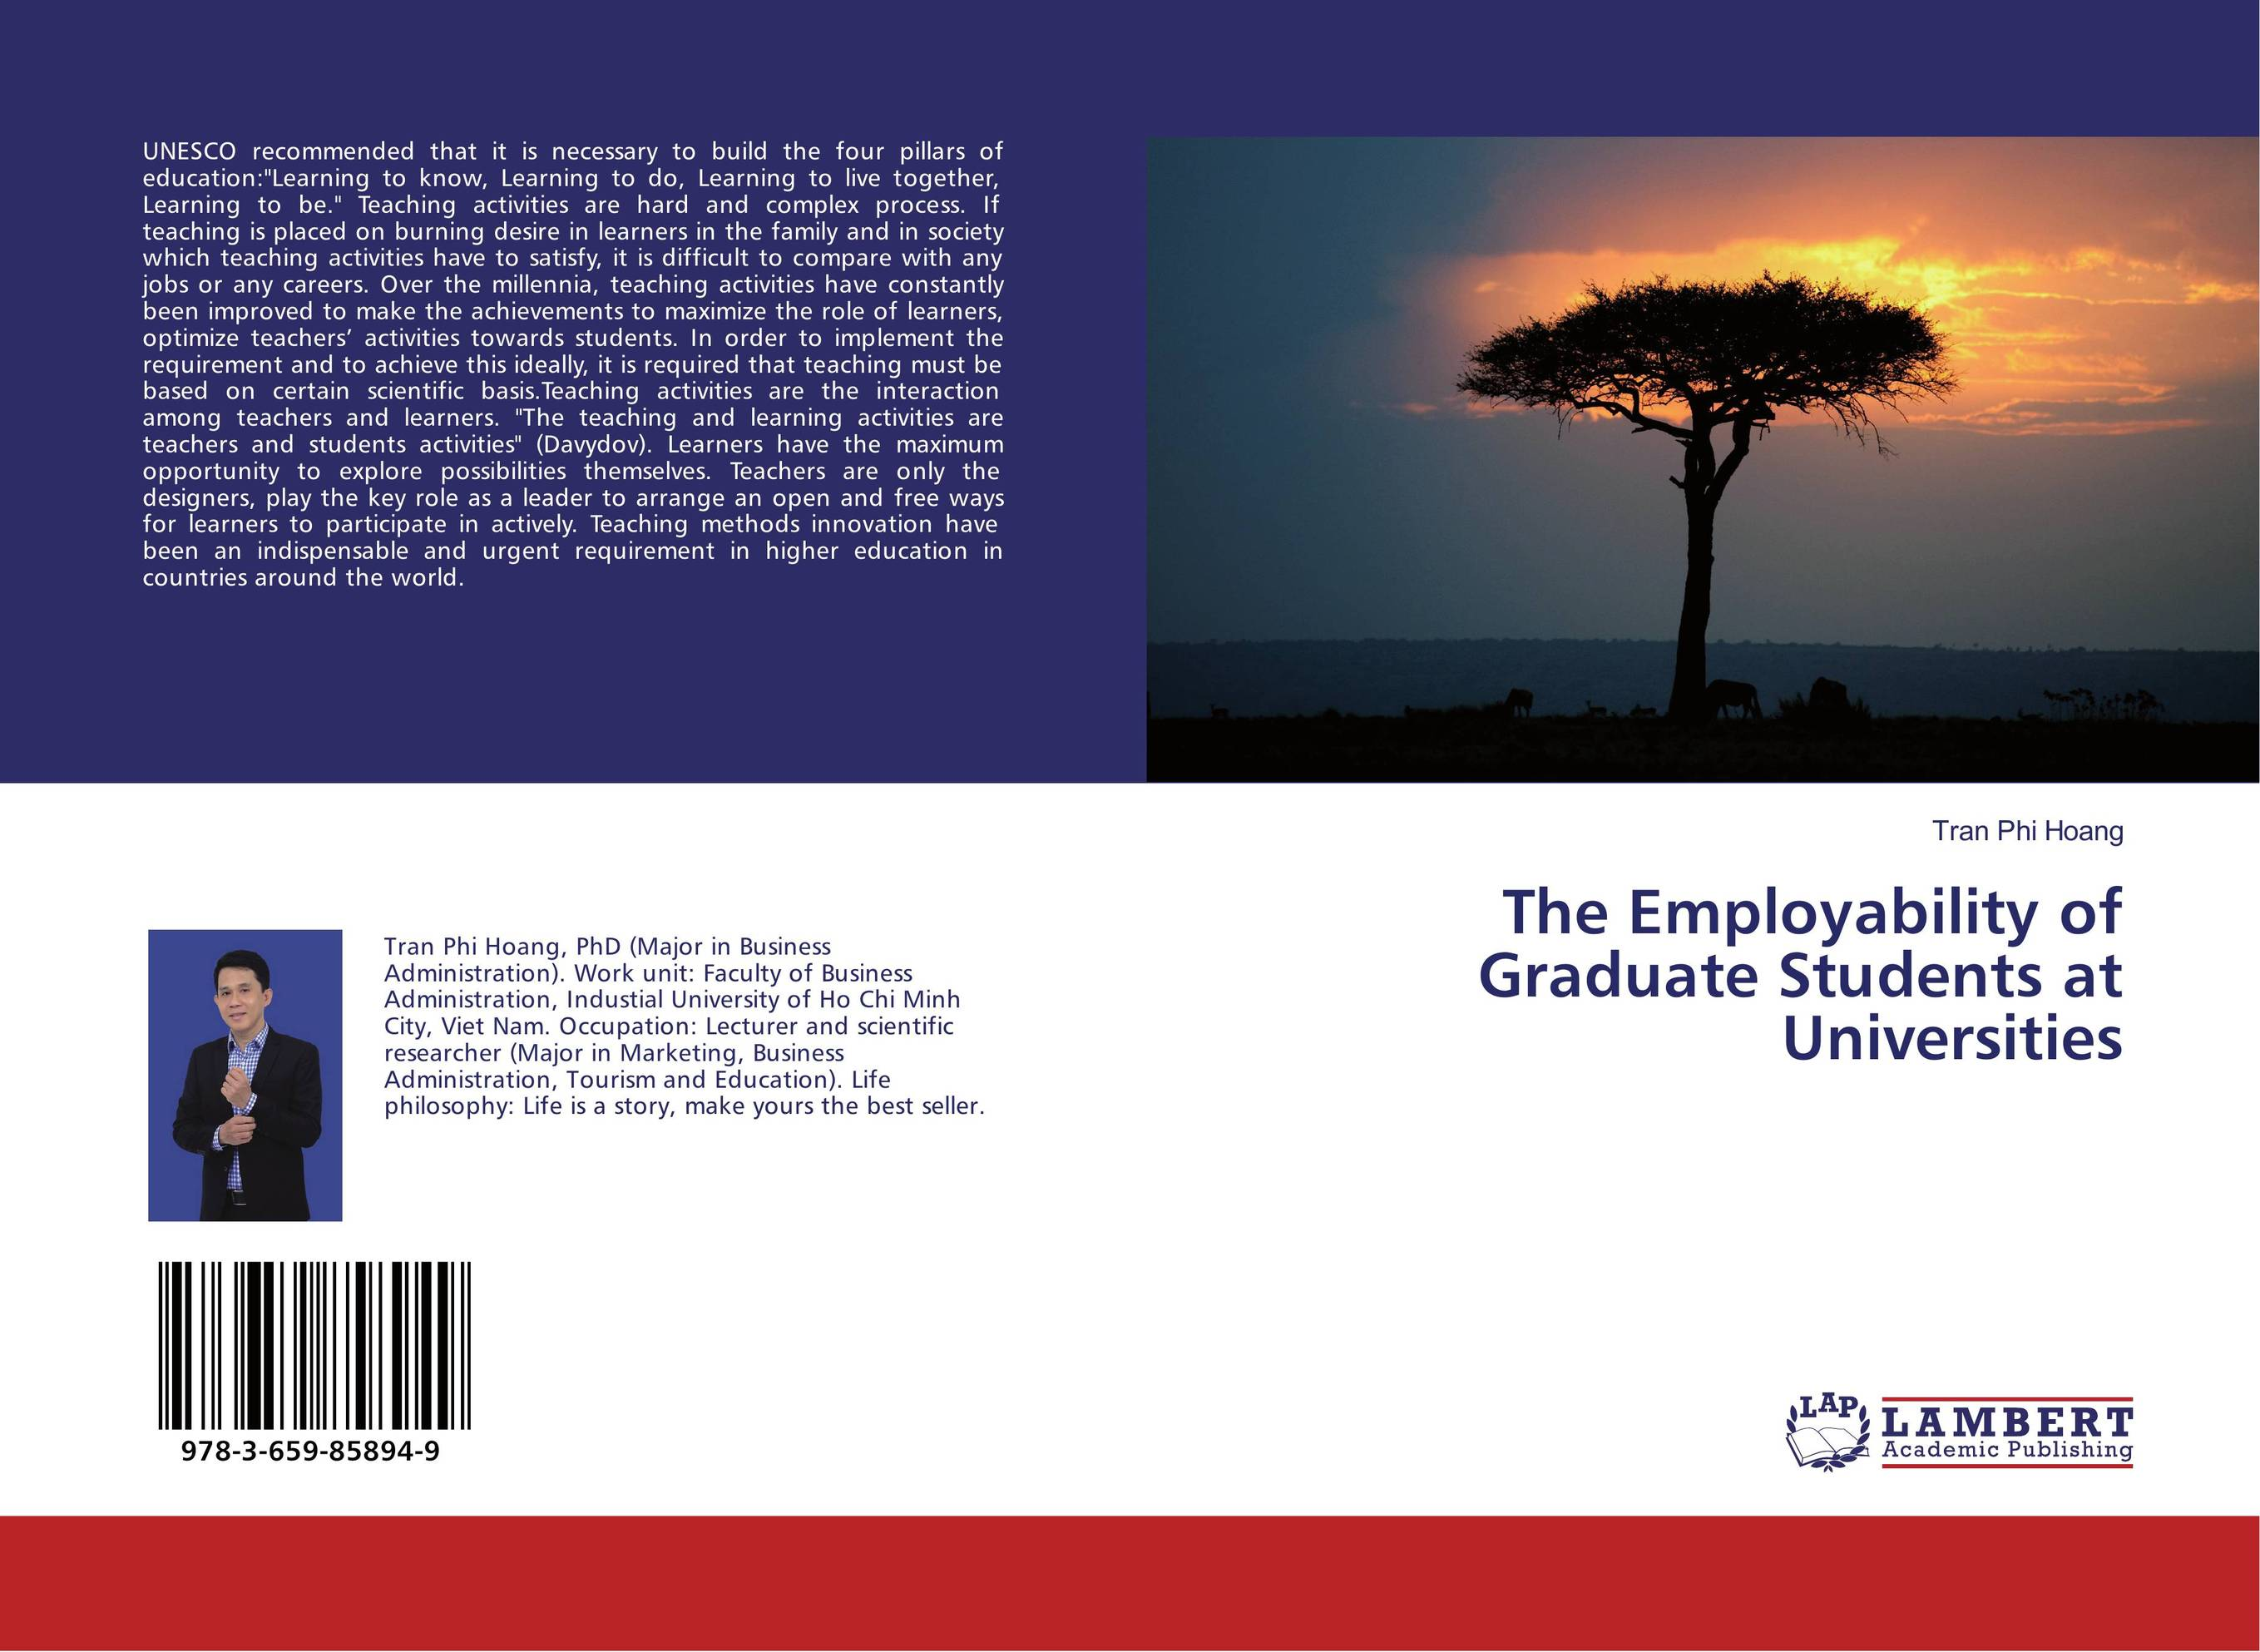 employability of graduates thesis Graduate employability in asia 1 employability of graduates in asia: an overview of case studies lay cheng tan and erika french-arnold the global economy favours knowledge and technology.